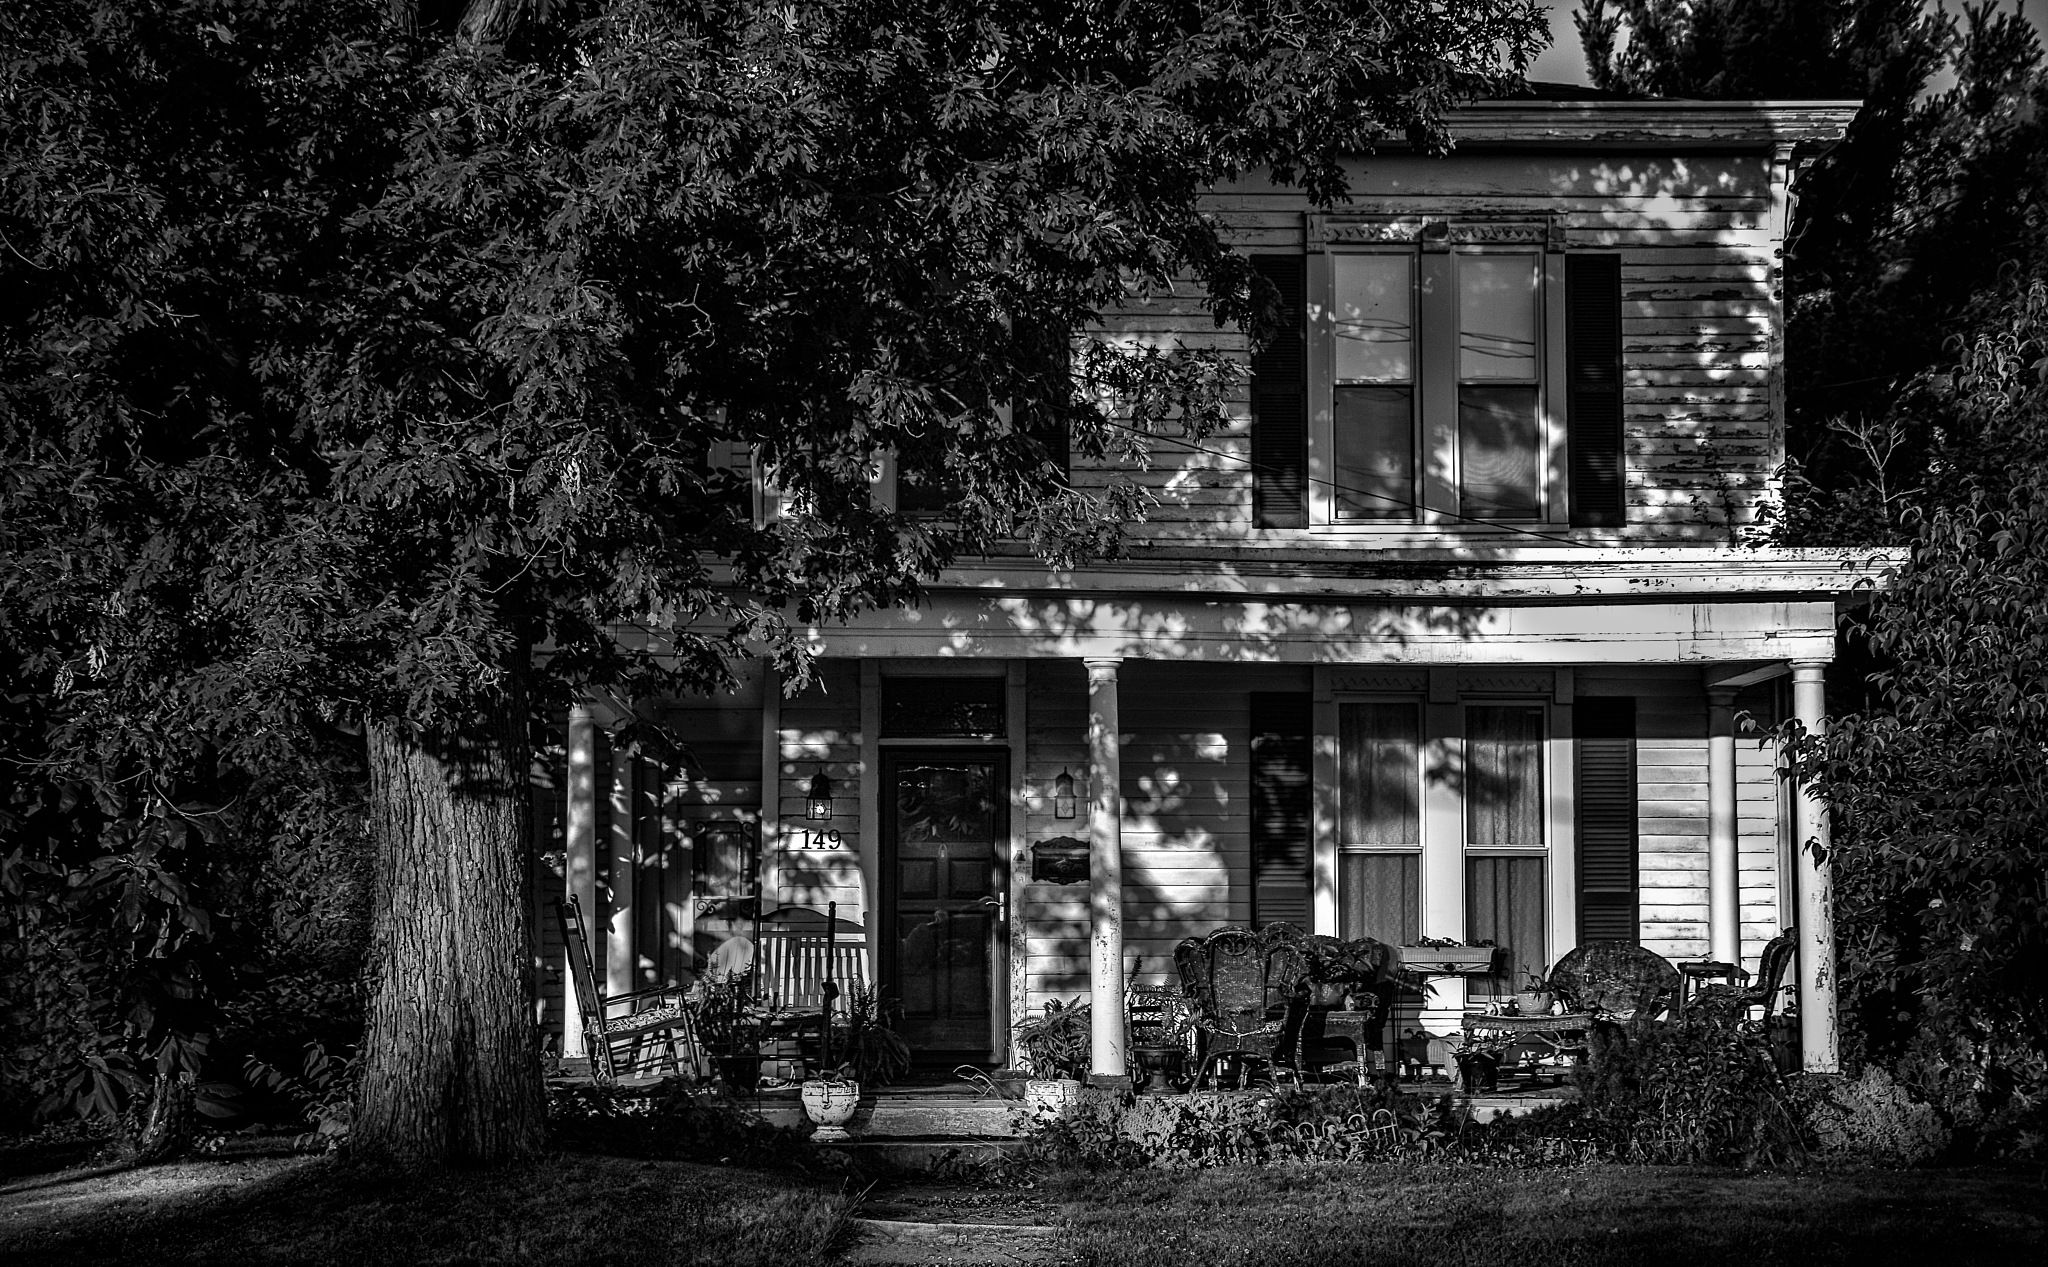 Tranquility is a Front Porch by danphares